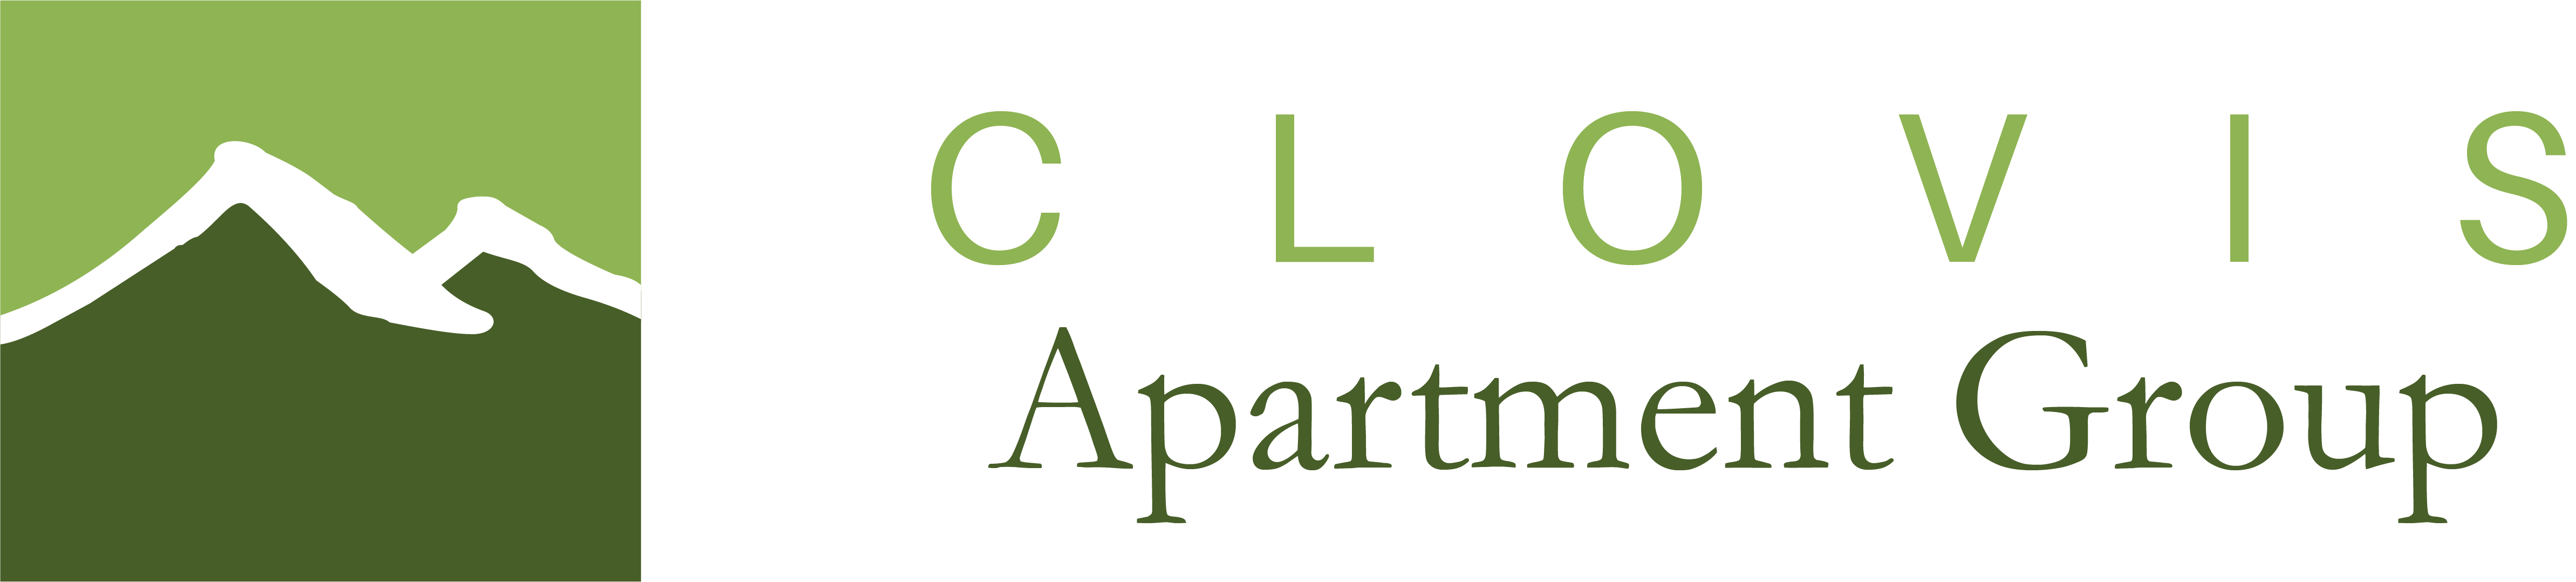 Clovis Apartment Group